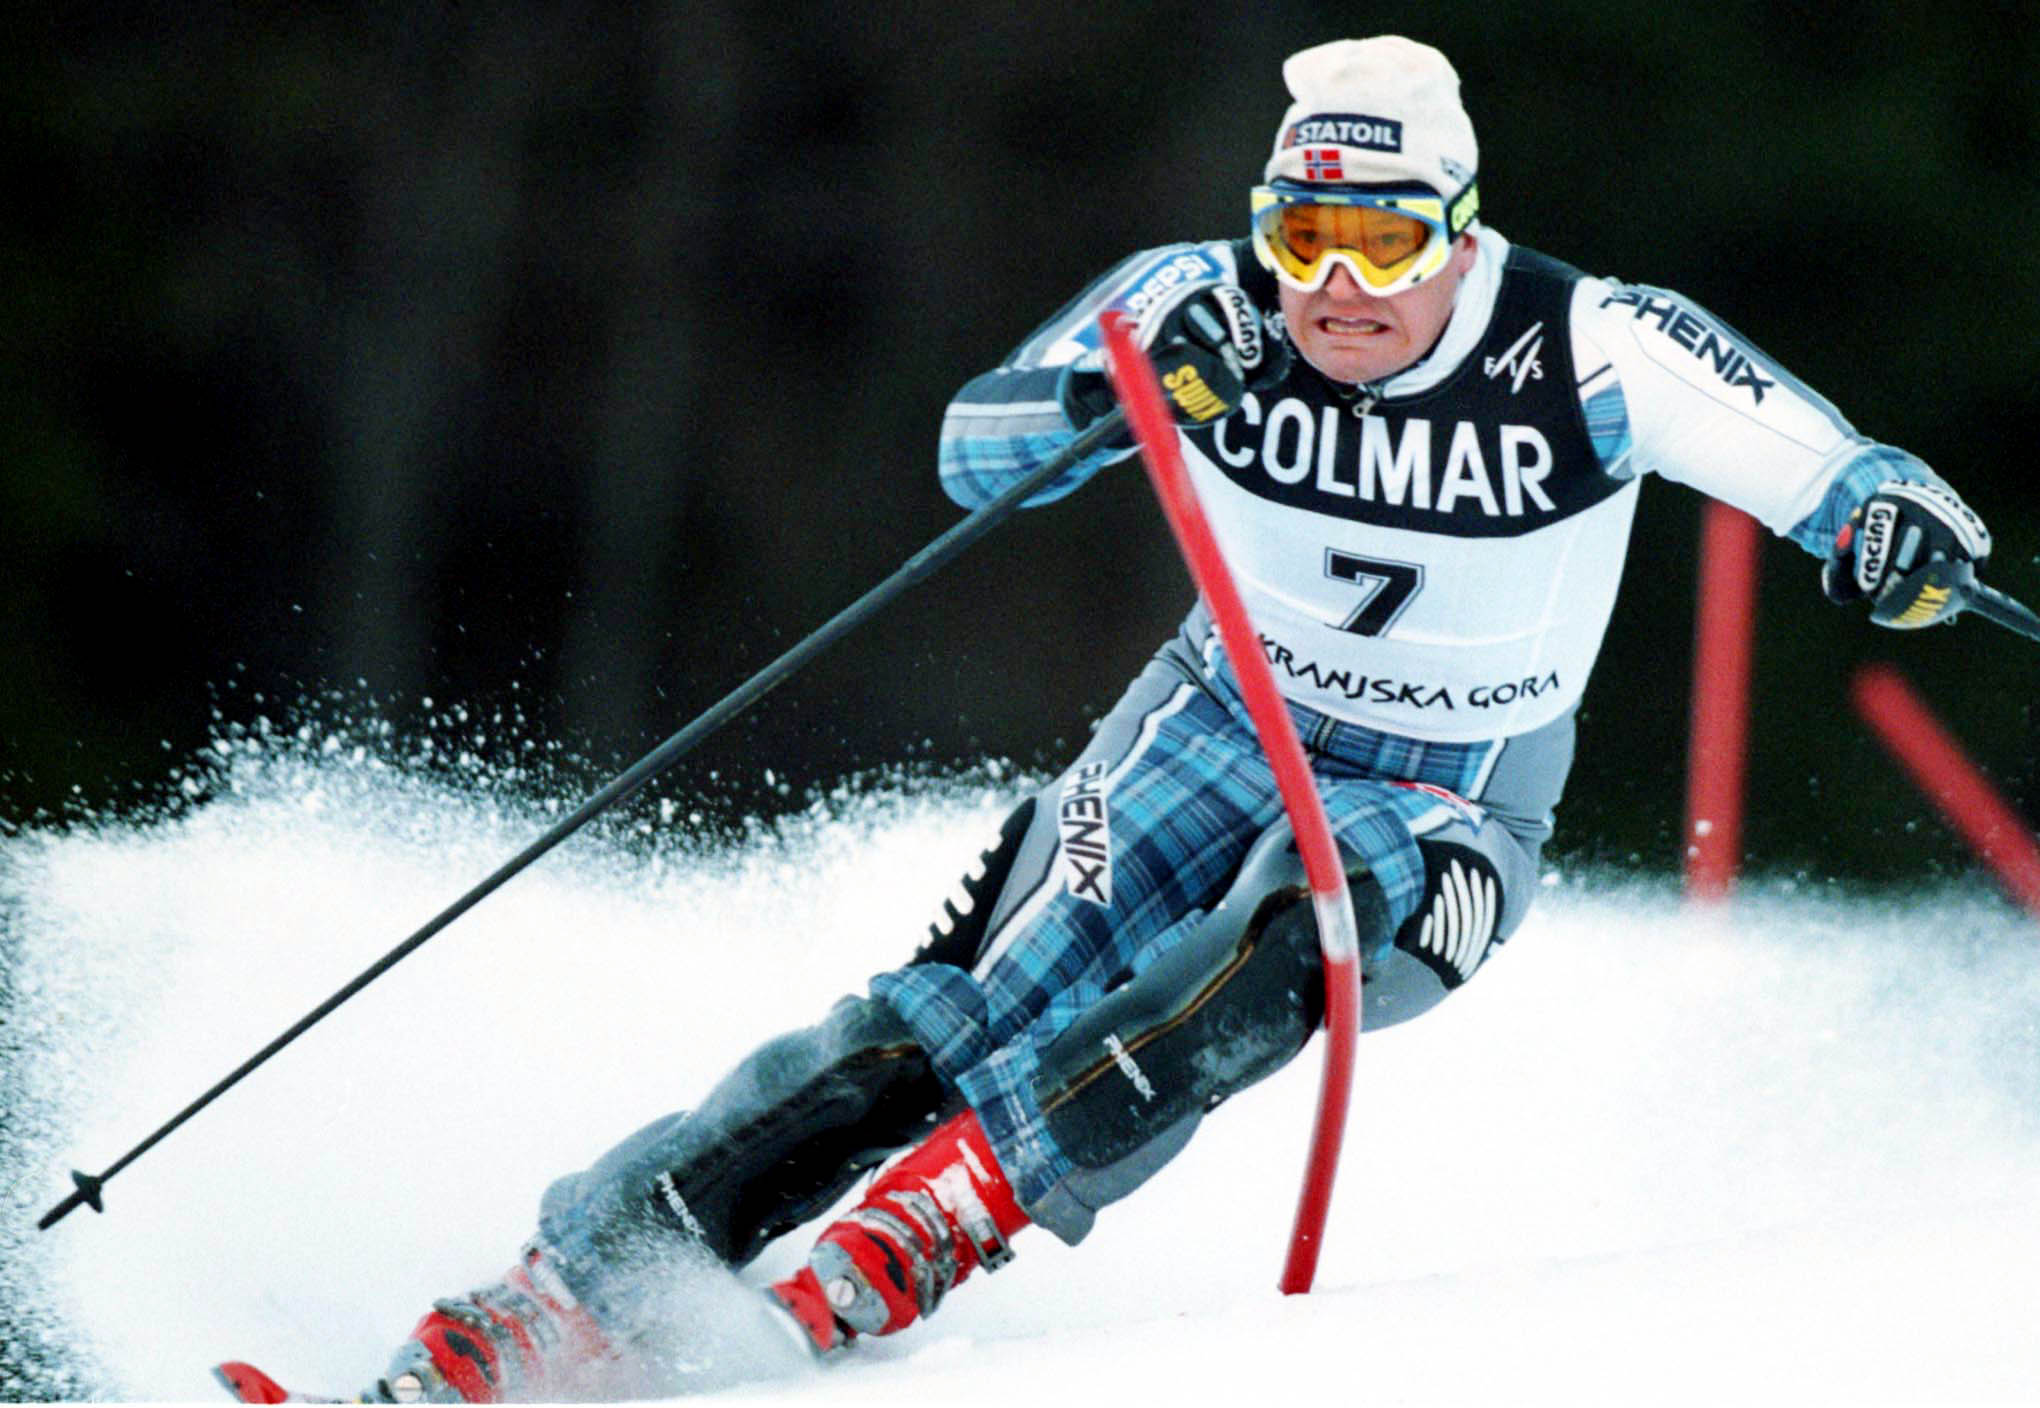 Mandatory Credit: Photo by Armando Trovati/AP/Shutterstock (7240133d) JAGGE Finn Christian Jagge, of Norway, clears a gate in a men's ski World Cup slalom in Kranjska Gora, Slovenia, . Jagge was fifth at finish line SLOVENIA SKI WORLD CUP, KRANJSKA GORA, Slovenia